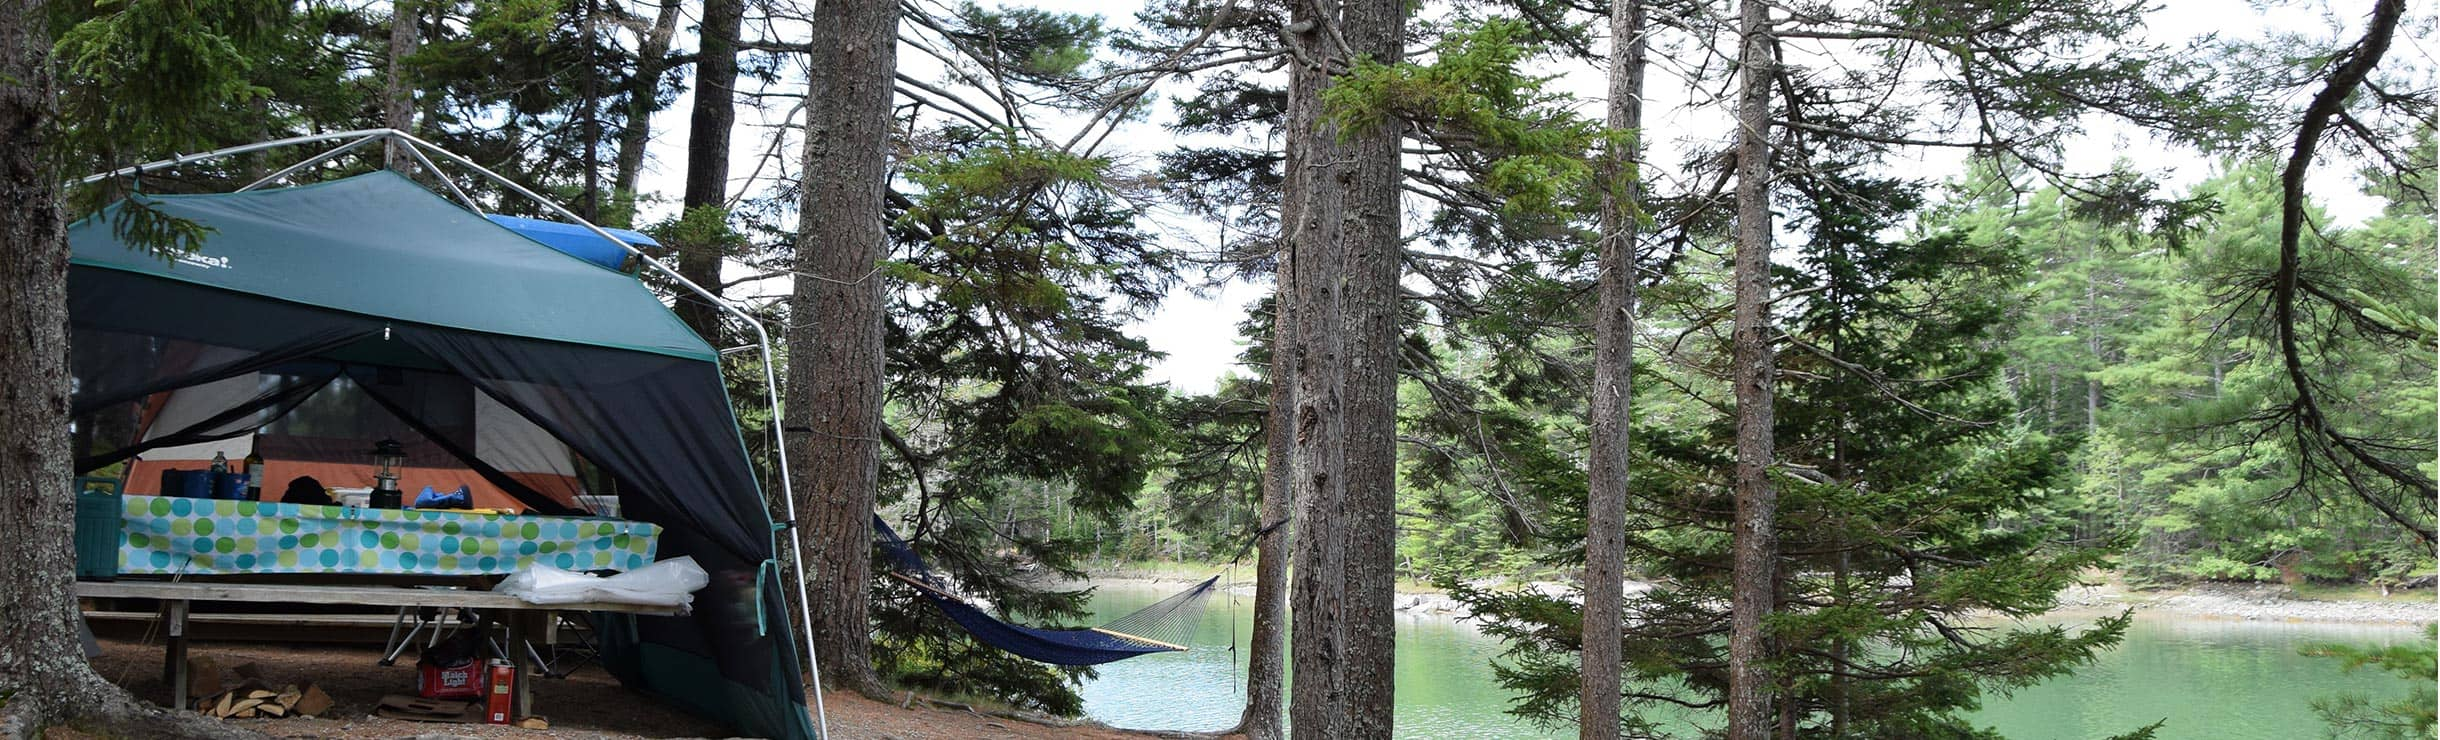 campsite with hammock overlooking the water